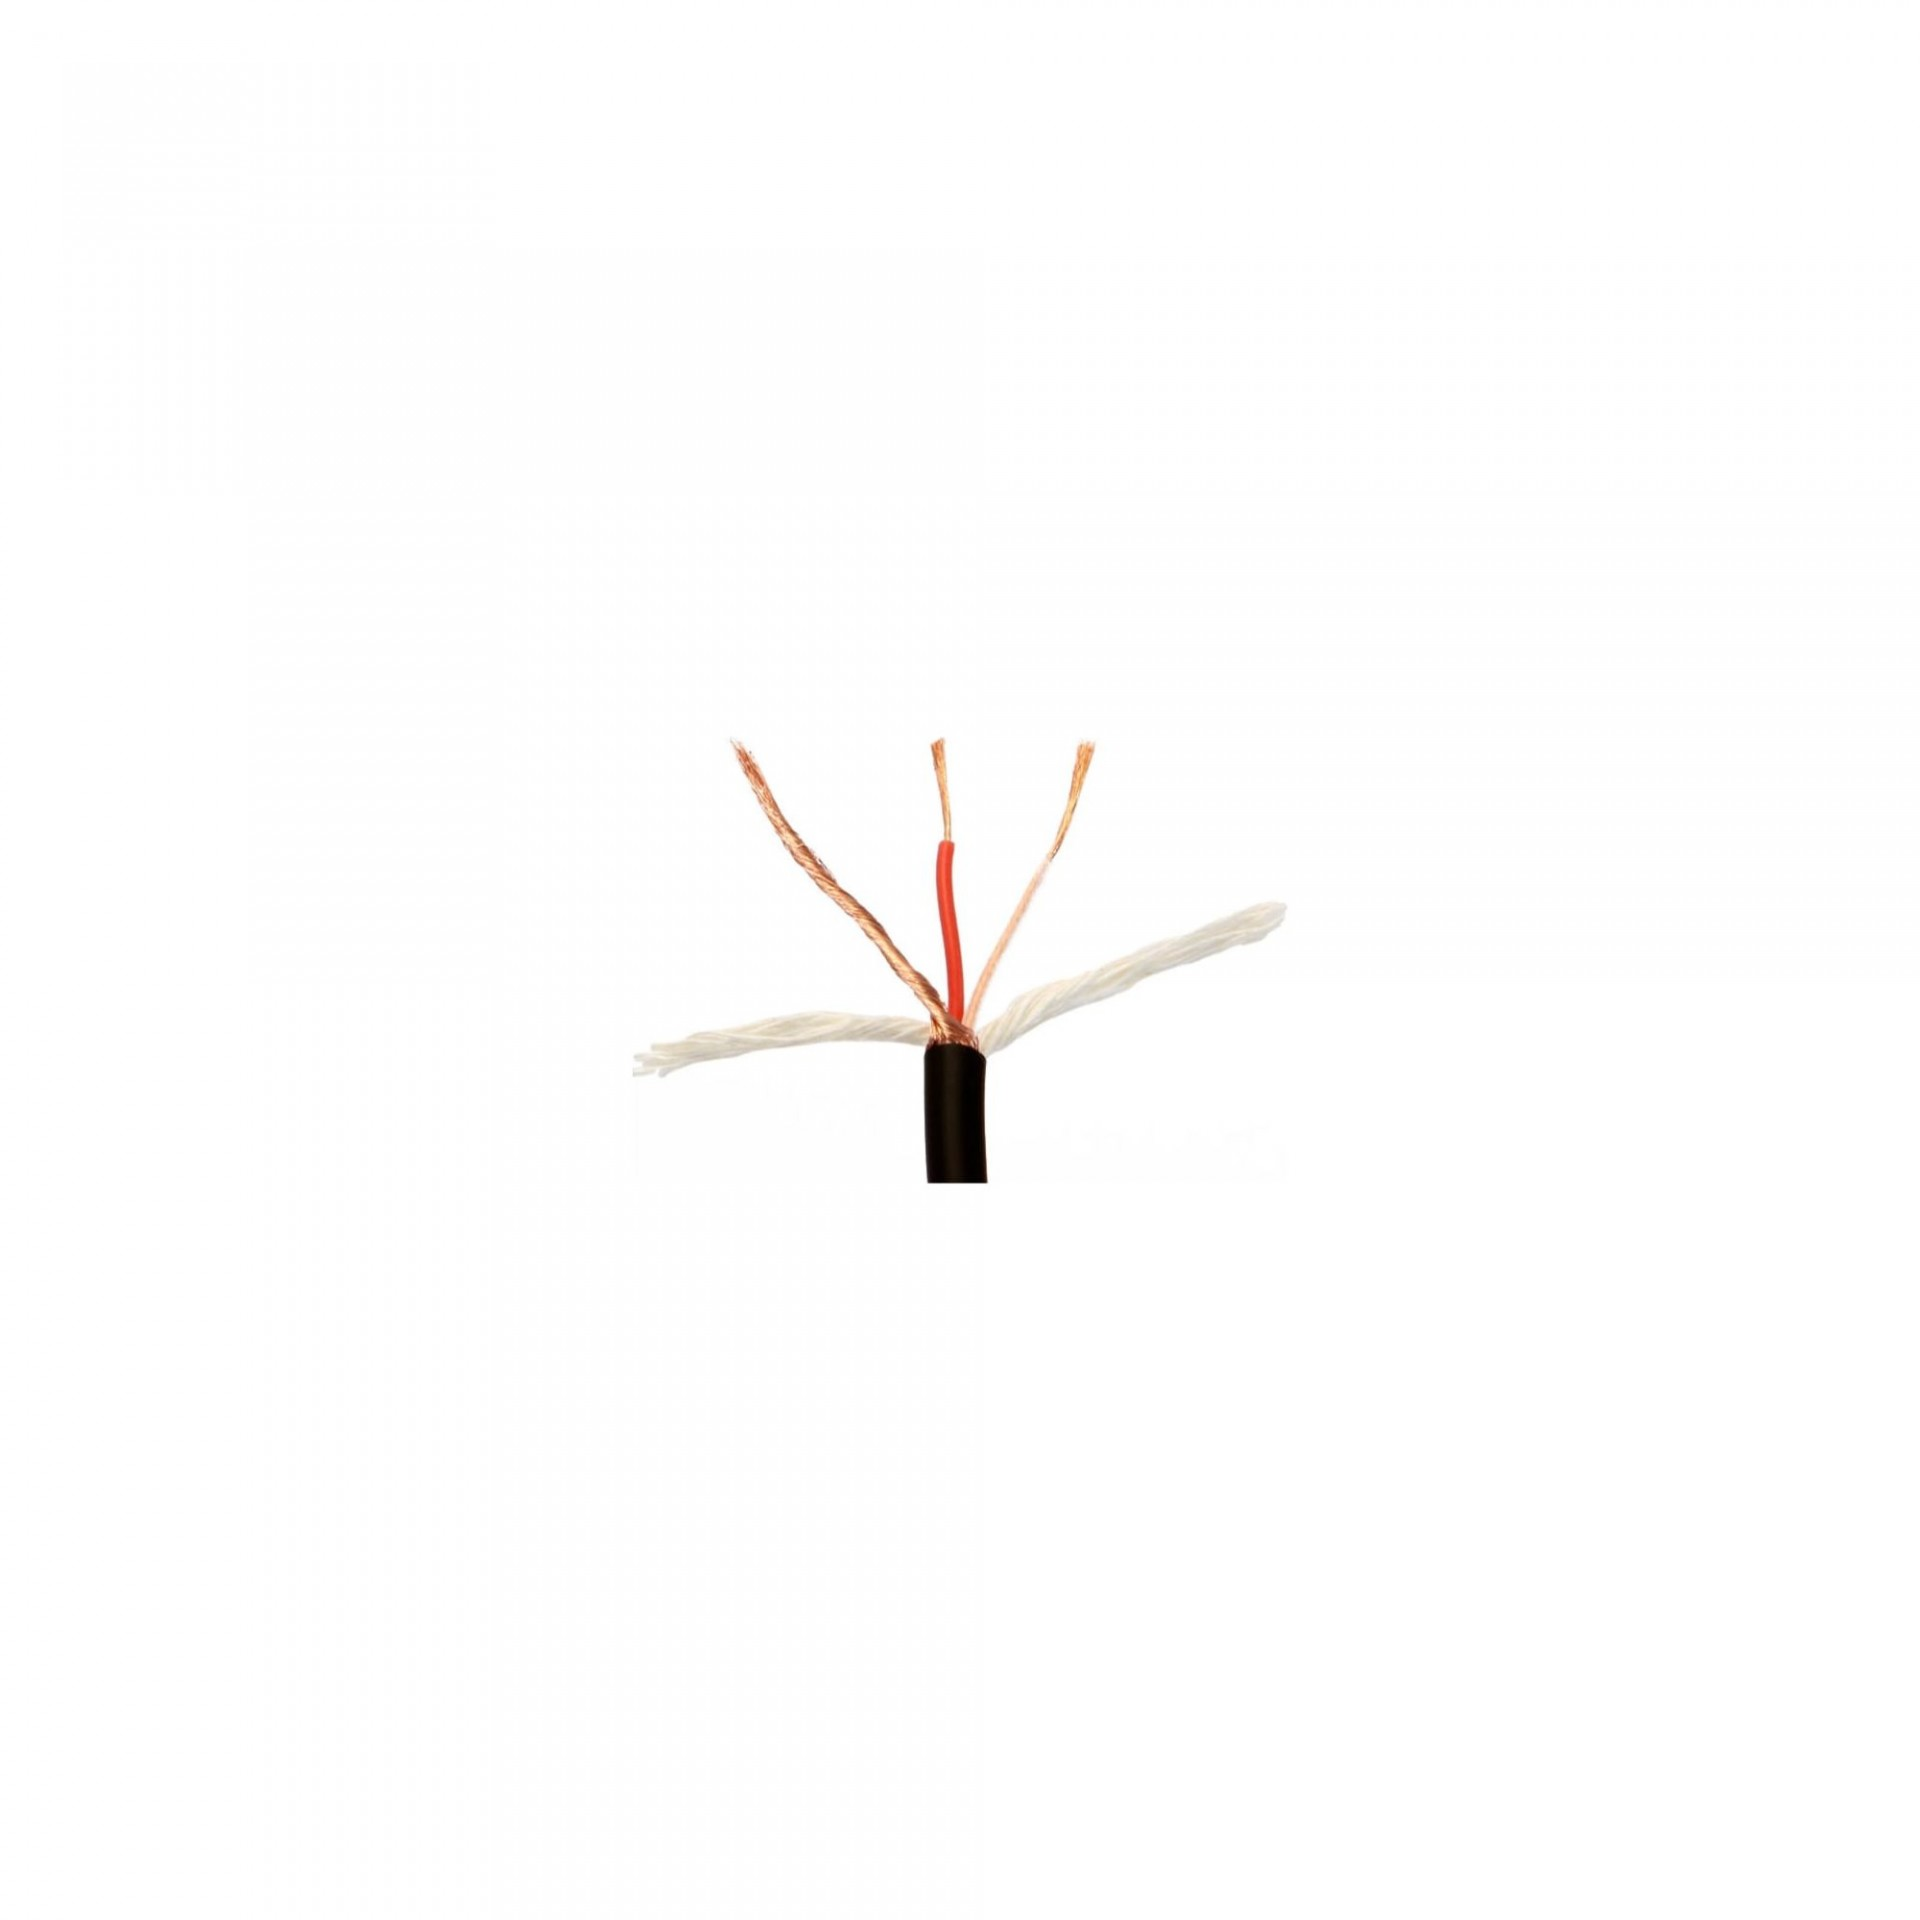 Mogami 2791 Microphone cable Black